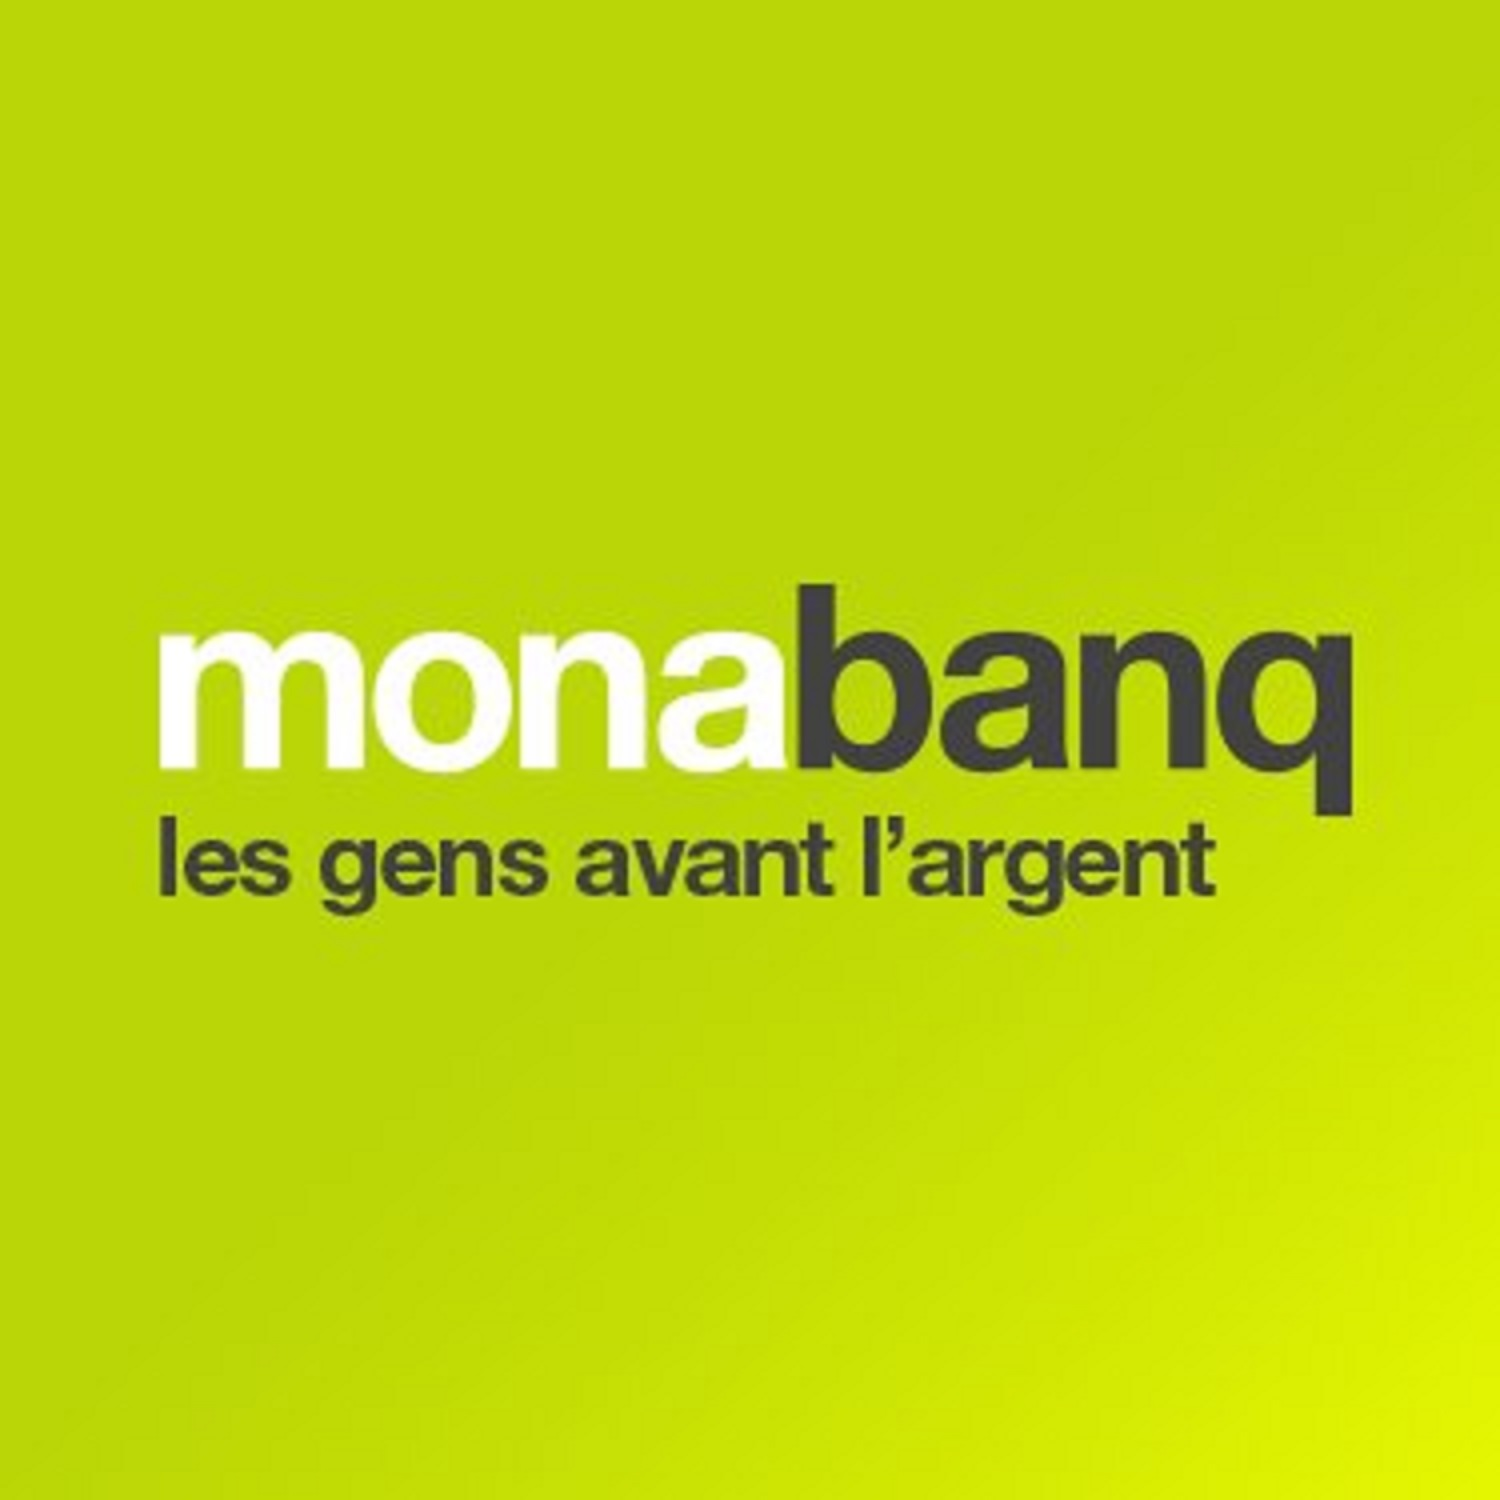 resilier compte monabanq